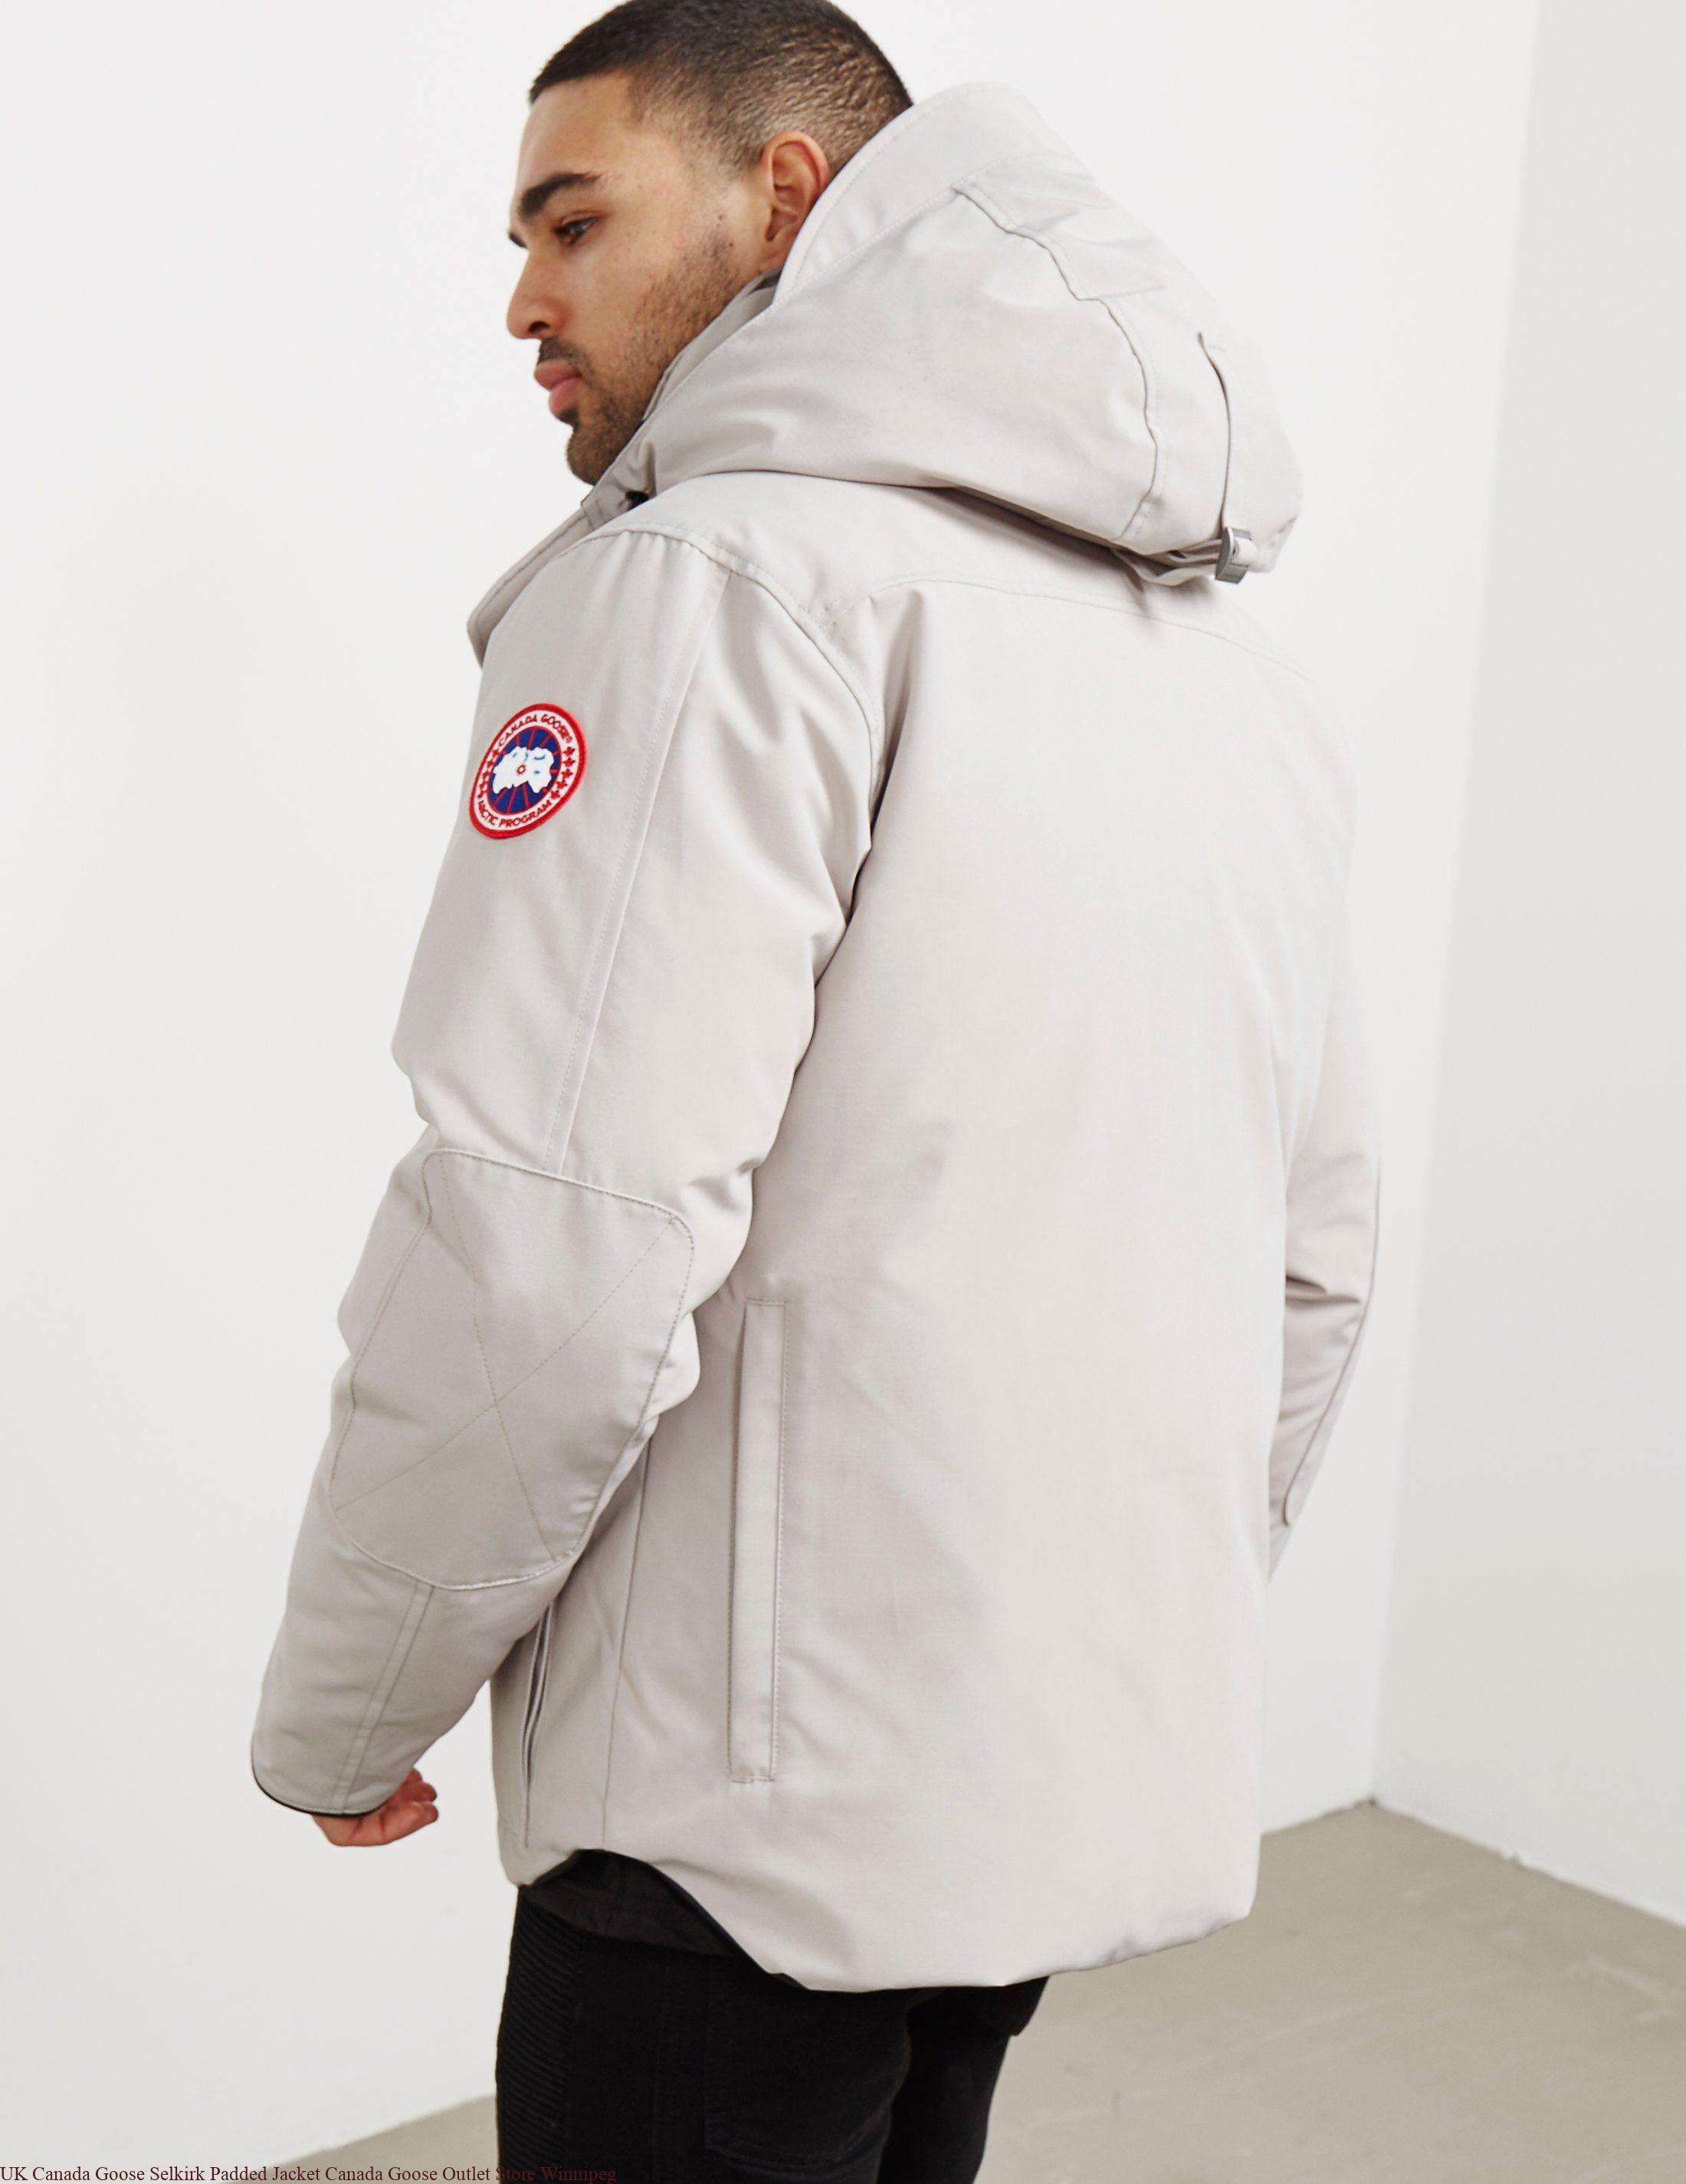 893e0e79984 UK Canada Goose Selkirk Padded Jacket Canada Goose Outlet Store Winnipeg –  UK Cheap Canada Goose Outlet Jackets On Sale